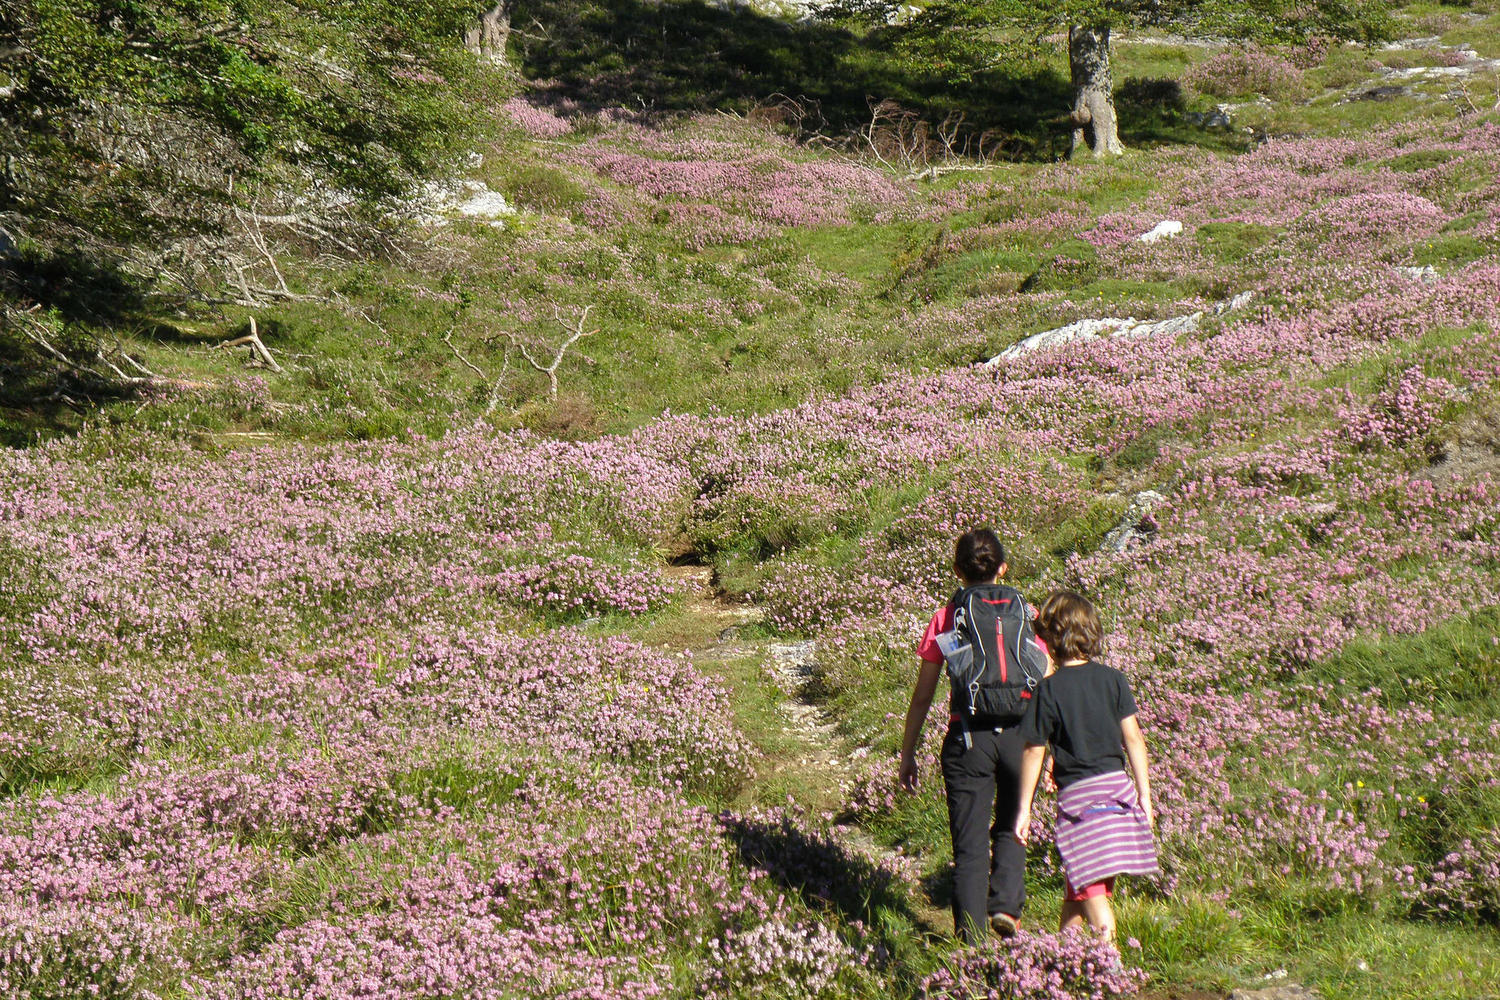 Walking with kids through blossomed heather